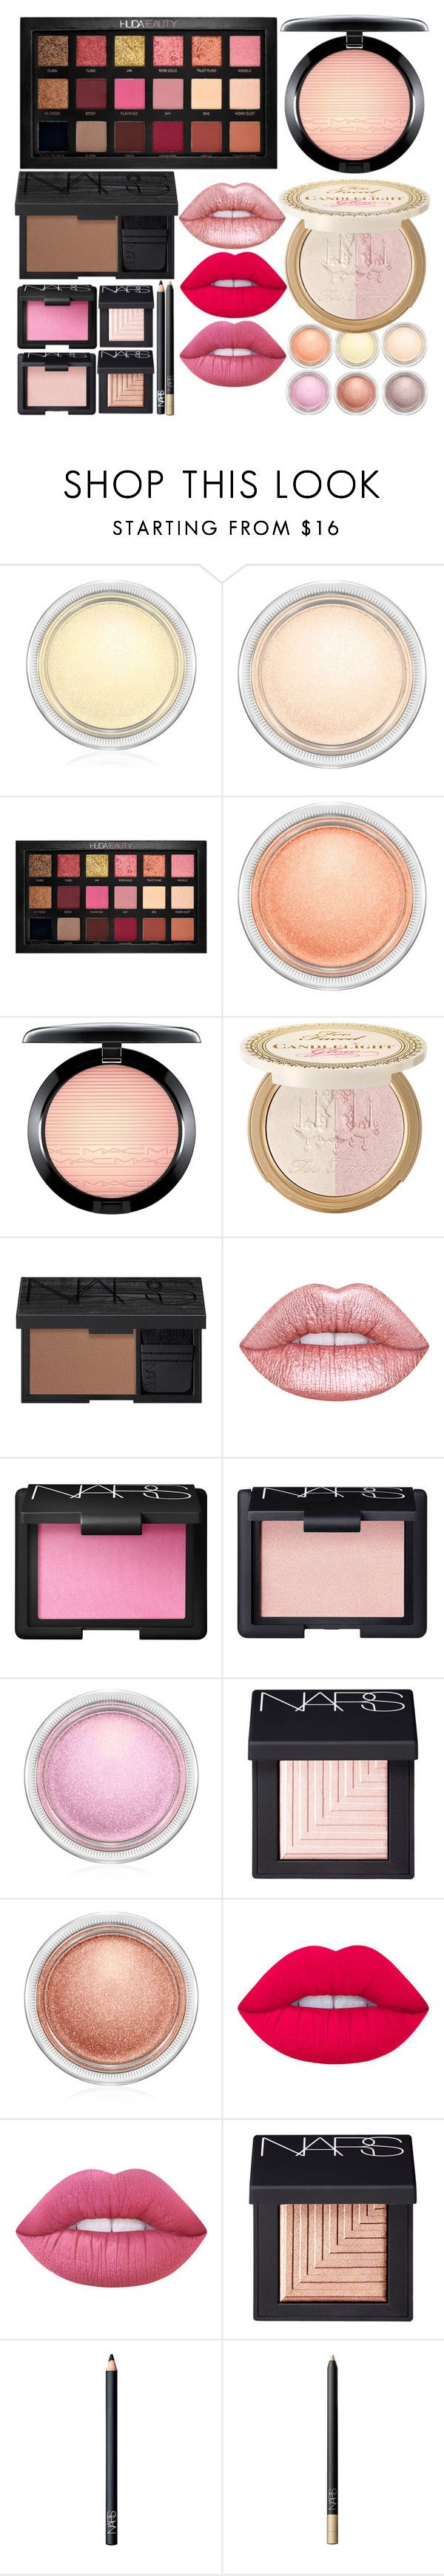 """""""Pink Summer Makeup"""" by arianasinger ❤ liked on Polyvore featuring beauty, MAC Cosmetics, Huda Beauty, Power of Makeup, NARS Cosmetics and Lime Crime"""